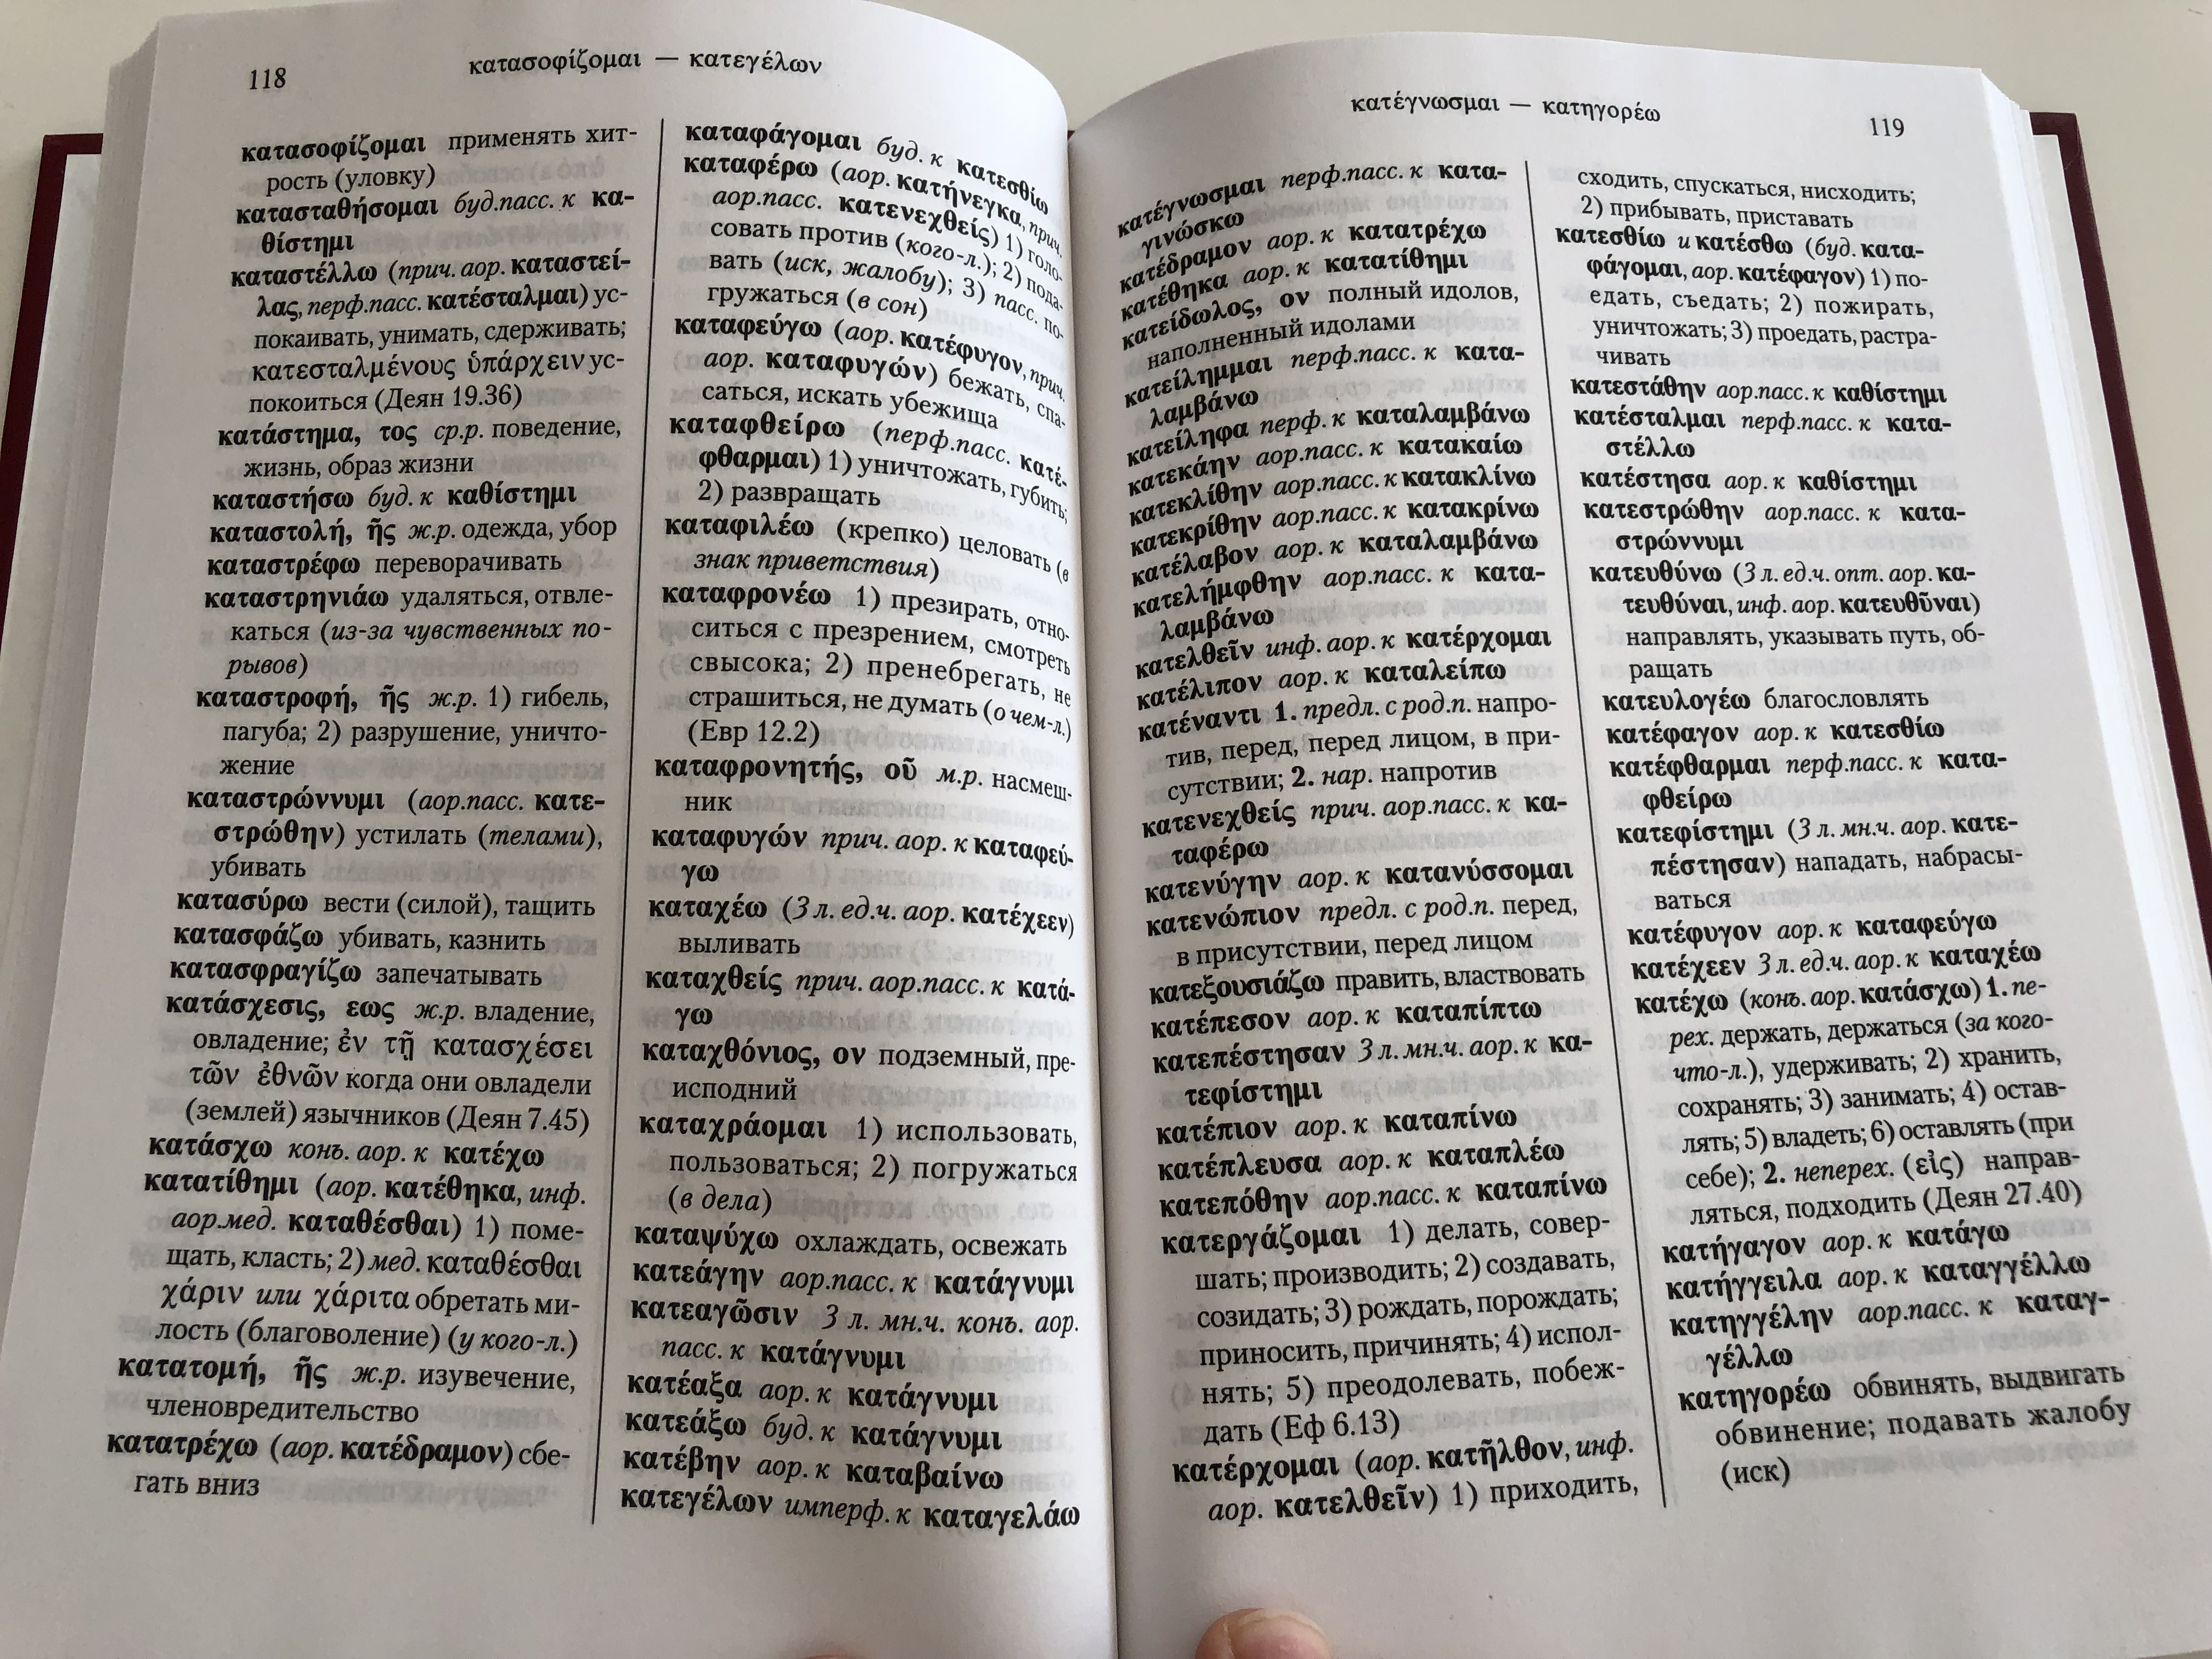 greek-russian-dictionary-of-the-new-testament-russian-translation-of-a-concise-greek-english-dictionary-of-the-new-testament-by-barkley-m.-newman-hardcover-200-russian-bible-society-4325417-.jpg